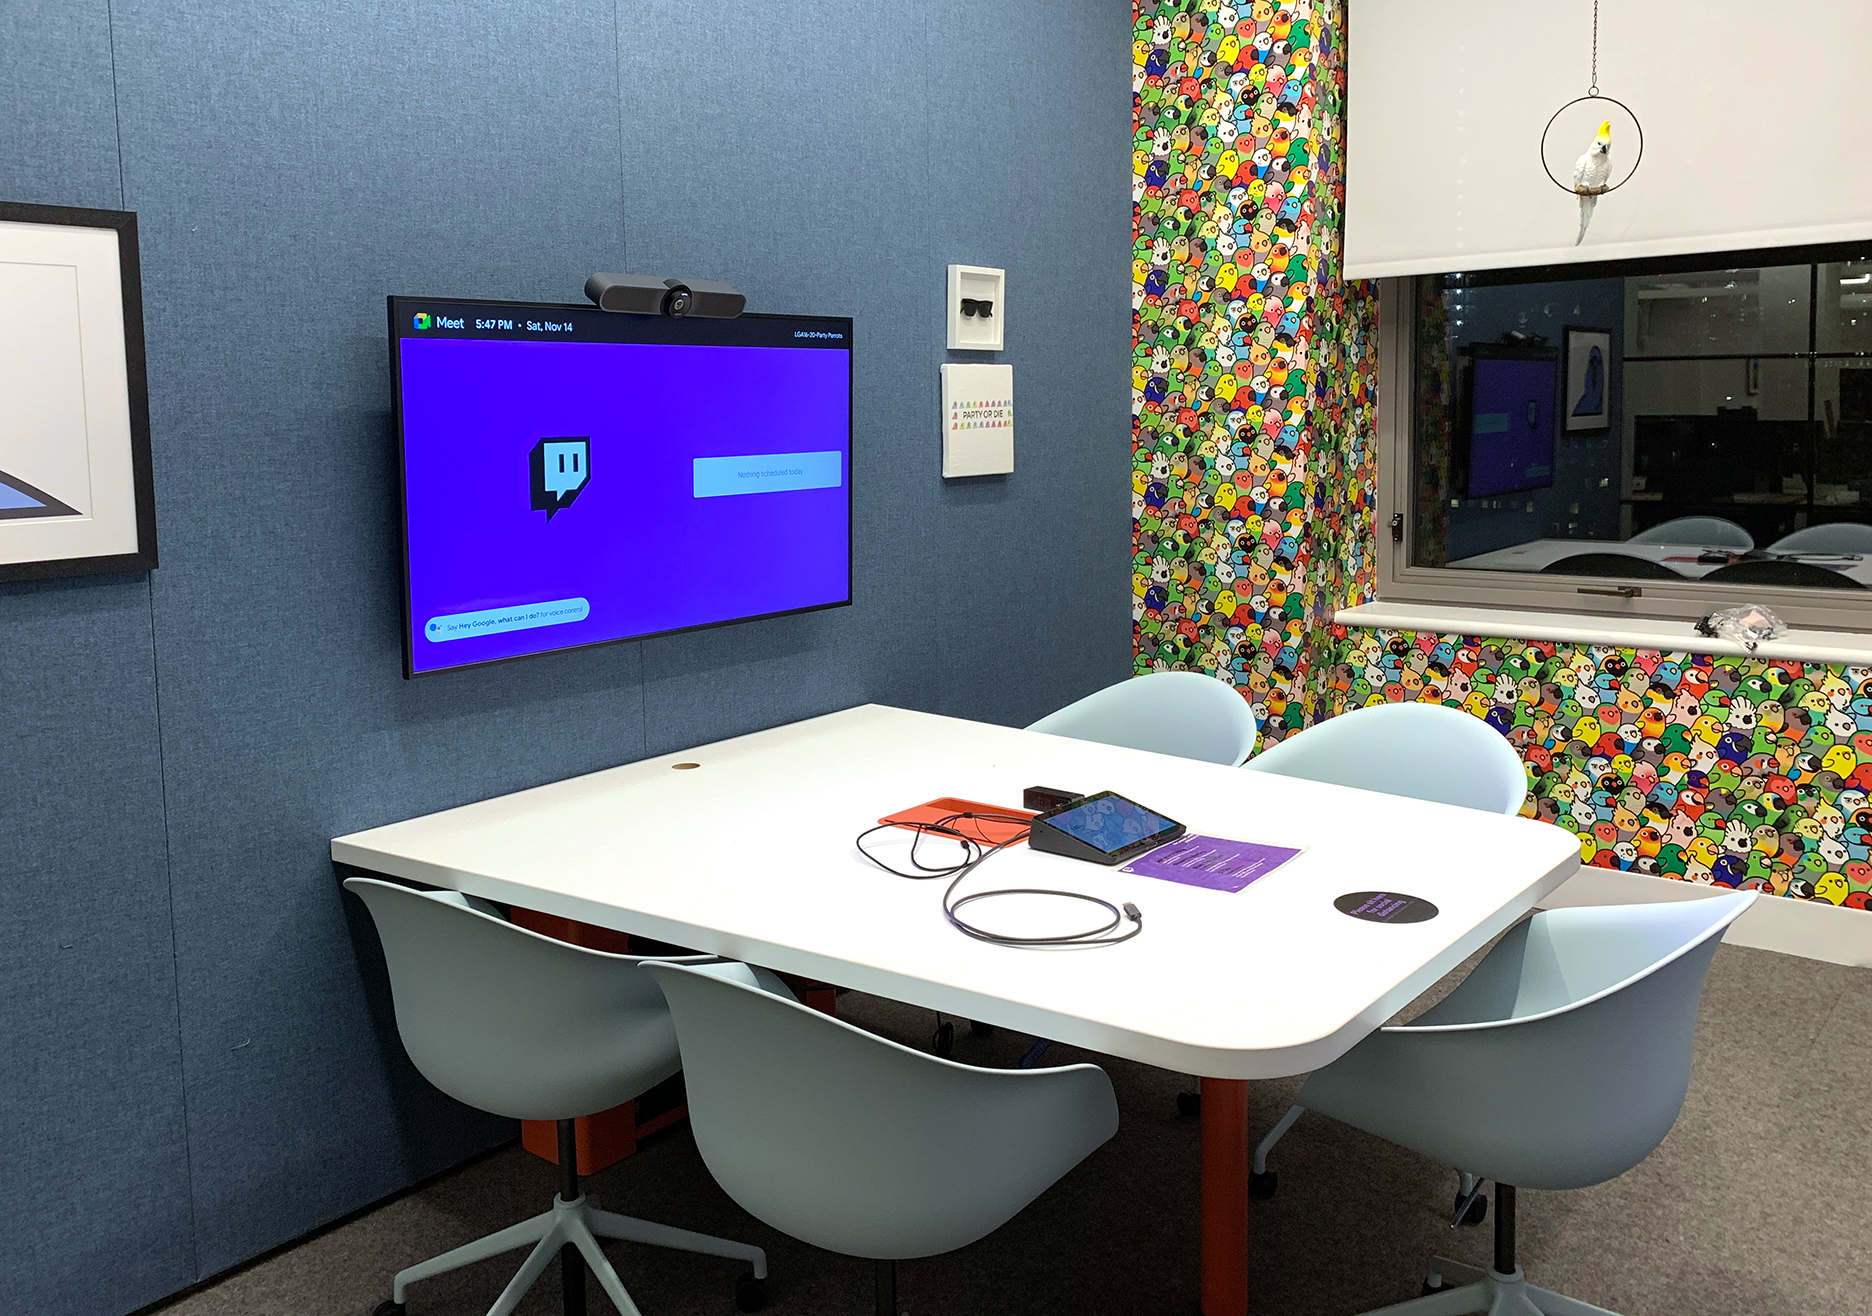 Conference room with a digital display at Twitch HQ 2.0